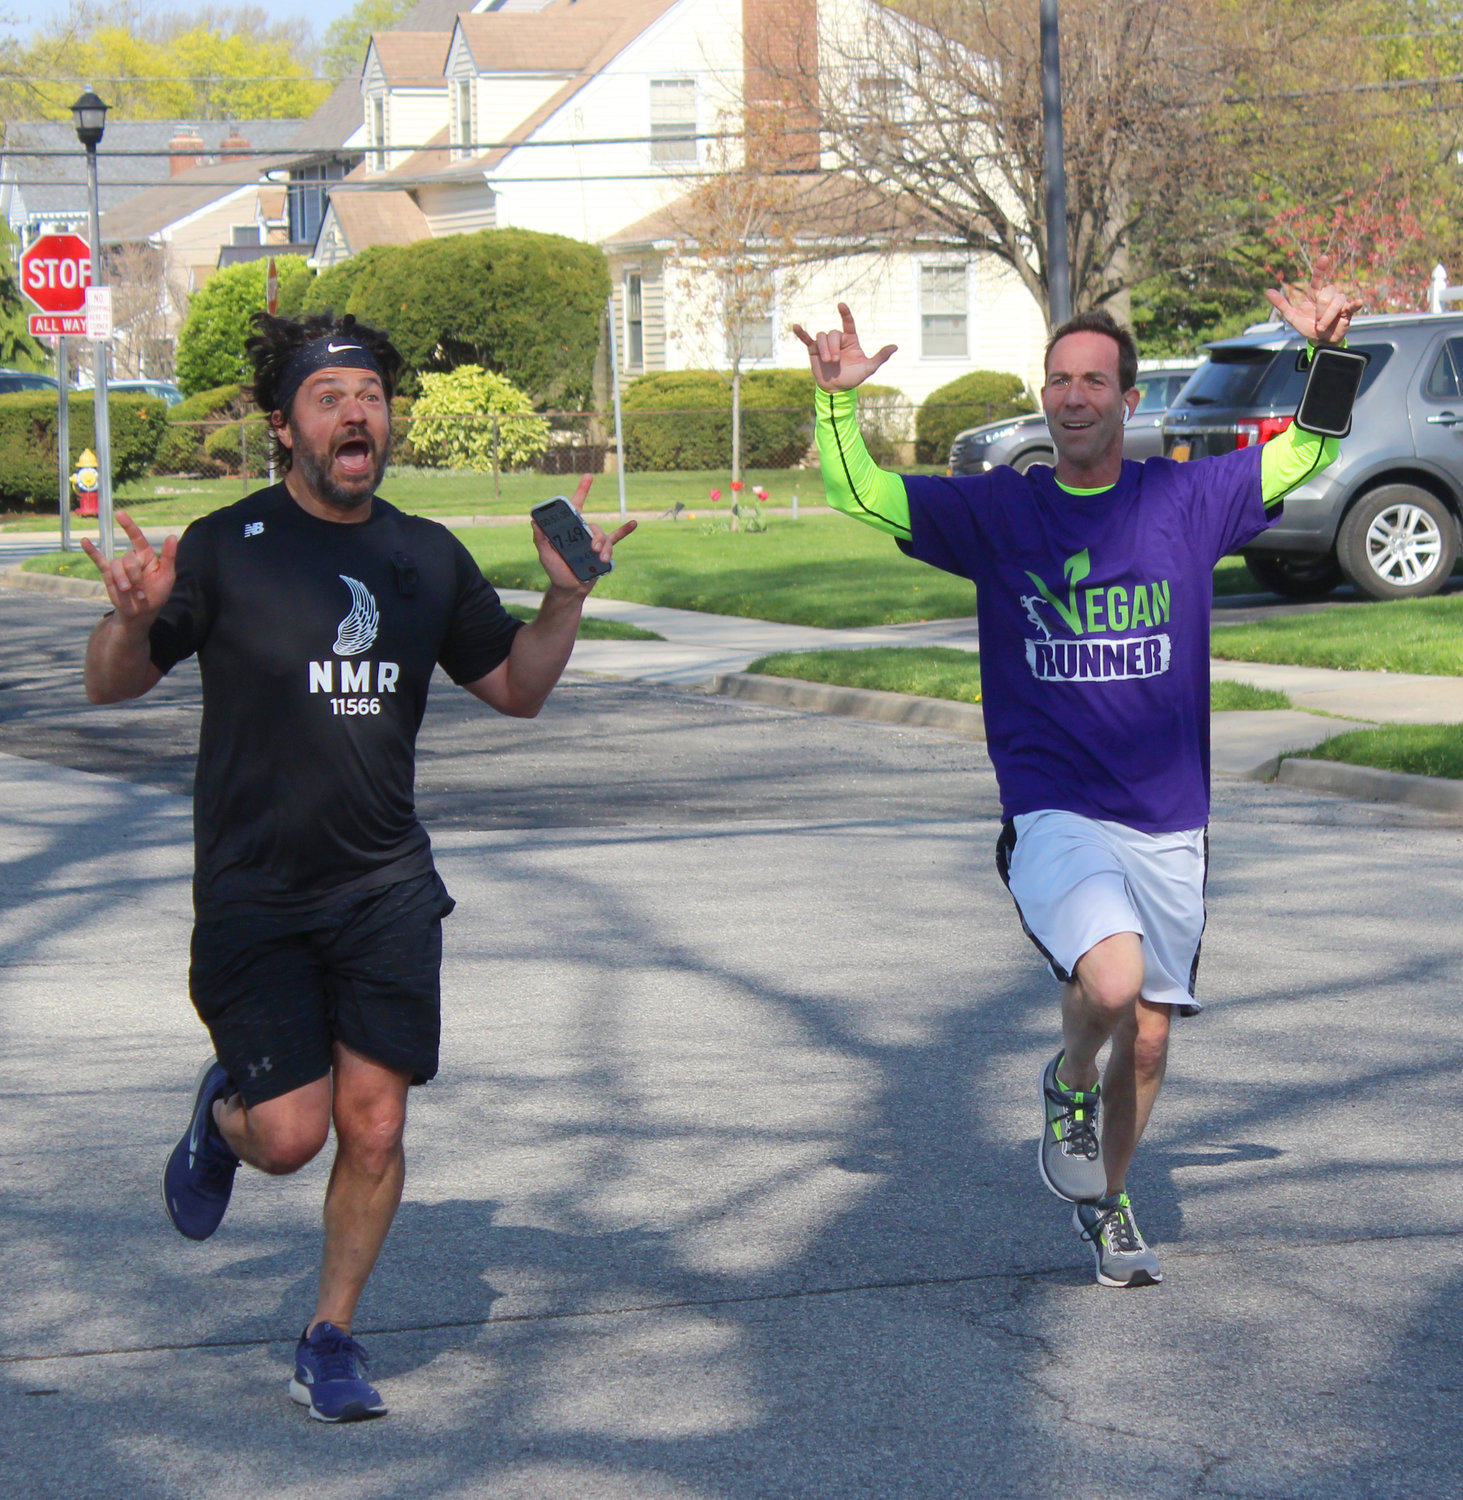 The Wantagh Wellness Project hosted its first community 5K last Saturday at Wantagh Elementary School. Above, Joe DiVico, 44, and Marc Turner, 47, both of Merrick and members of the North Merrick Runners.